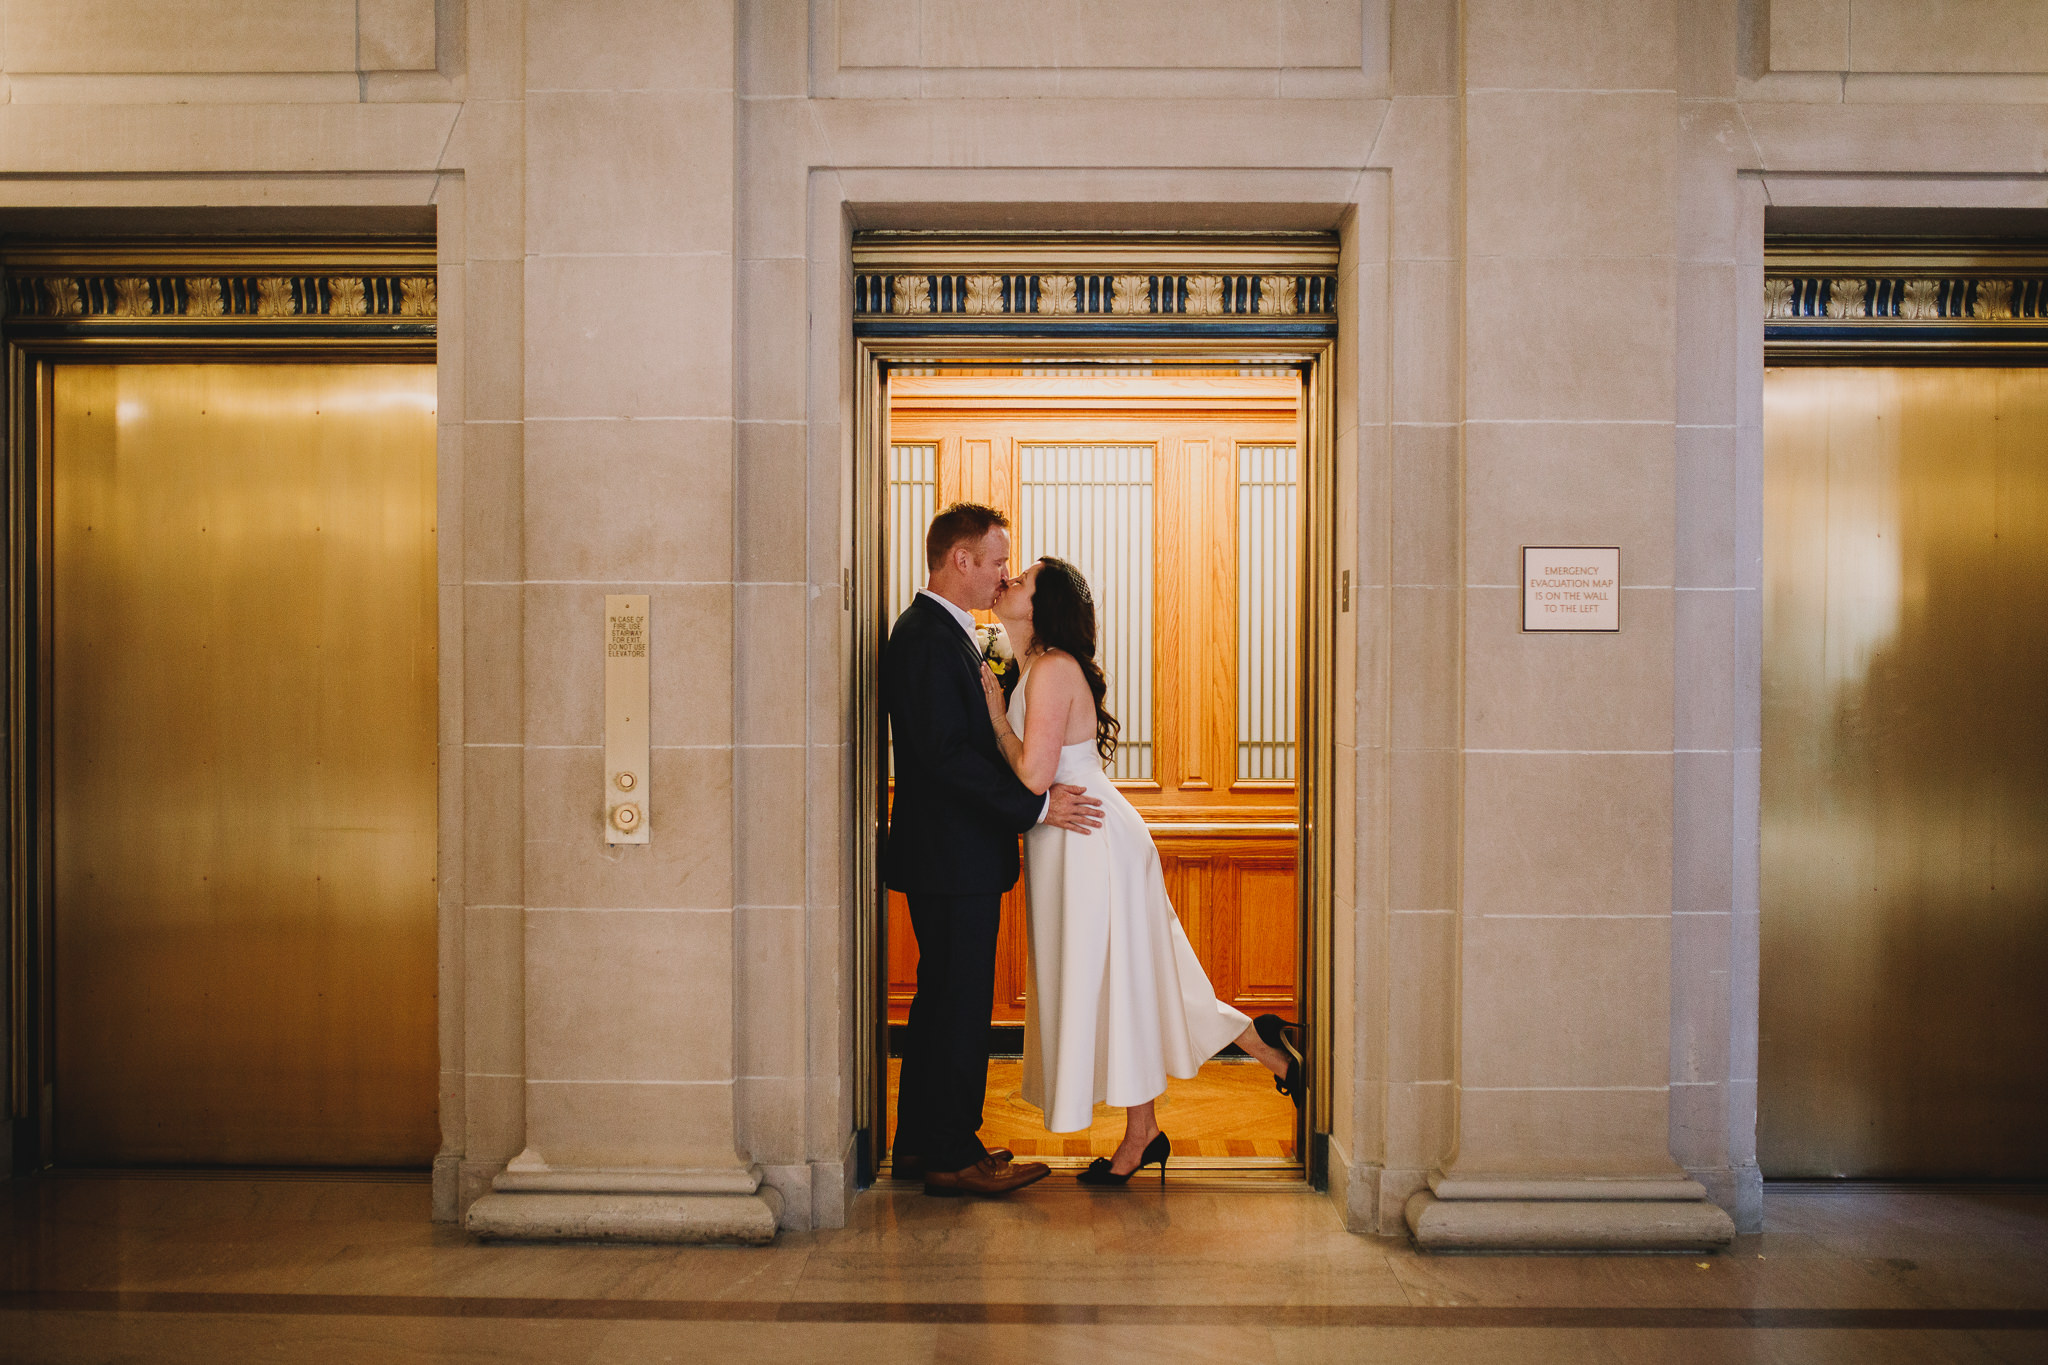 Archer Inspired Photography SF City Hall Elopement Wedding Lifestyle Documentary Affordable Photographer-177.jpg